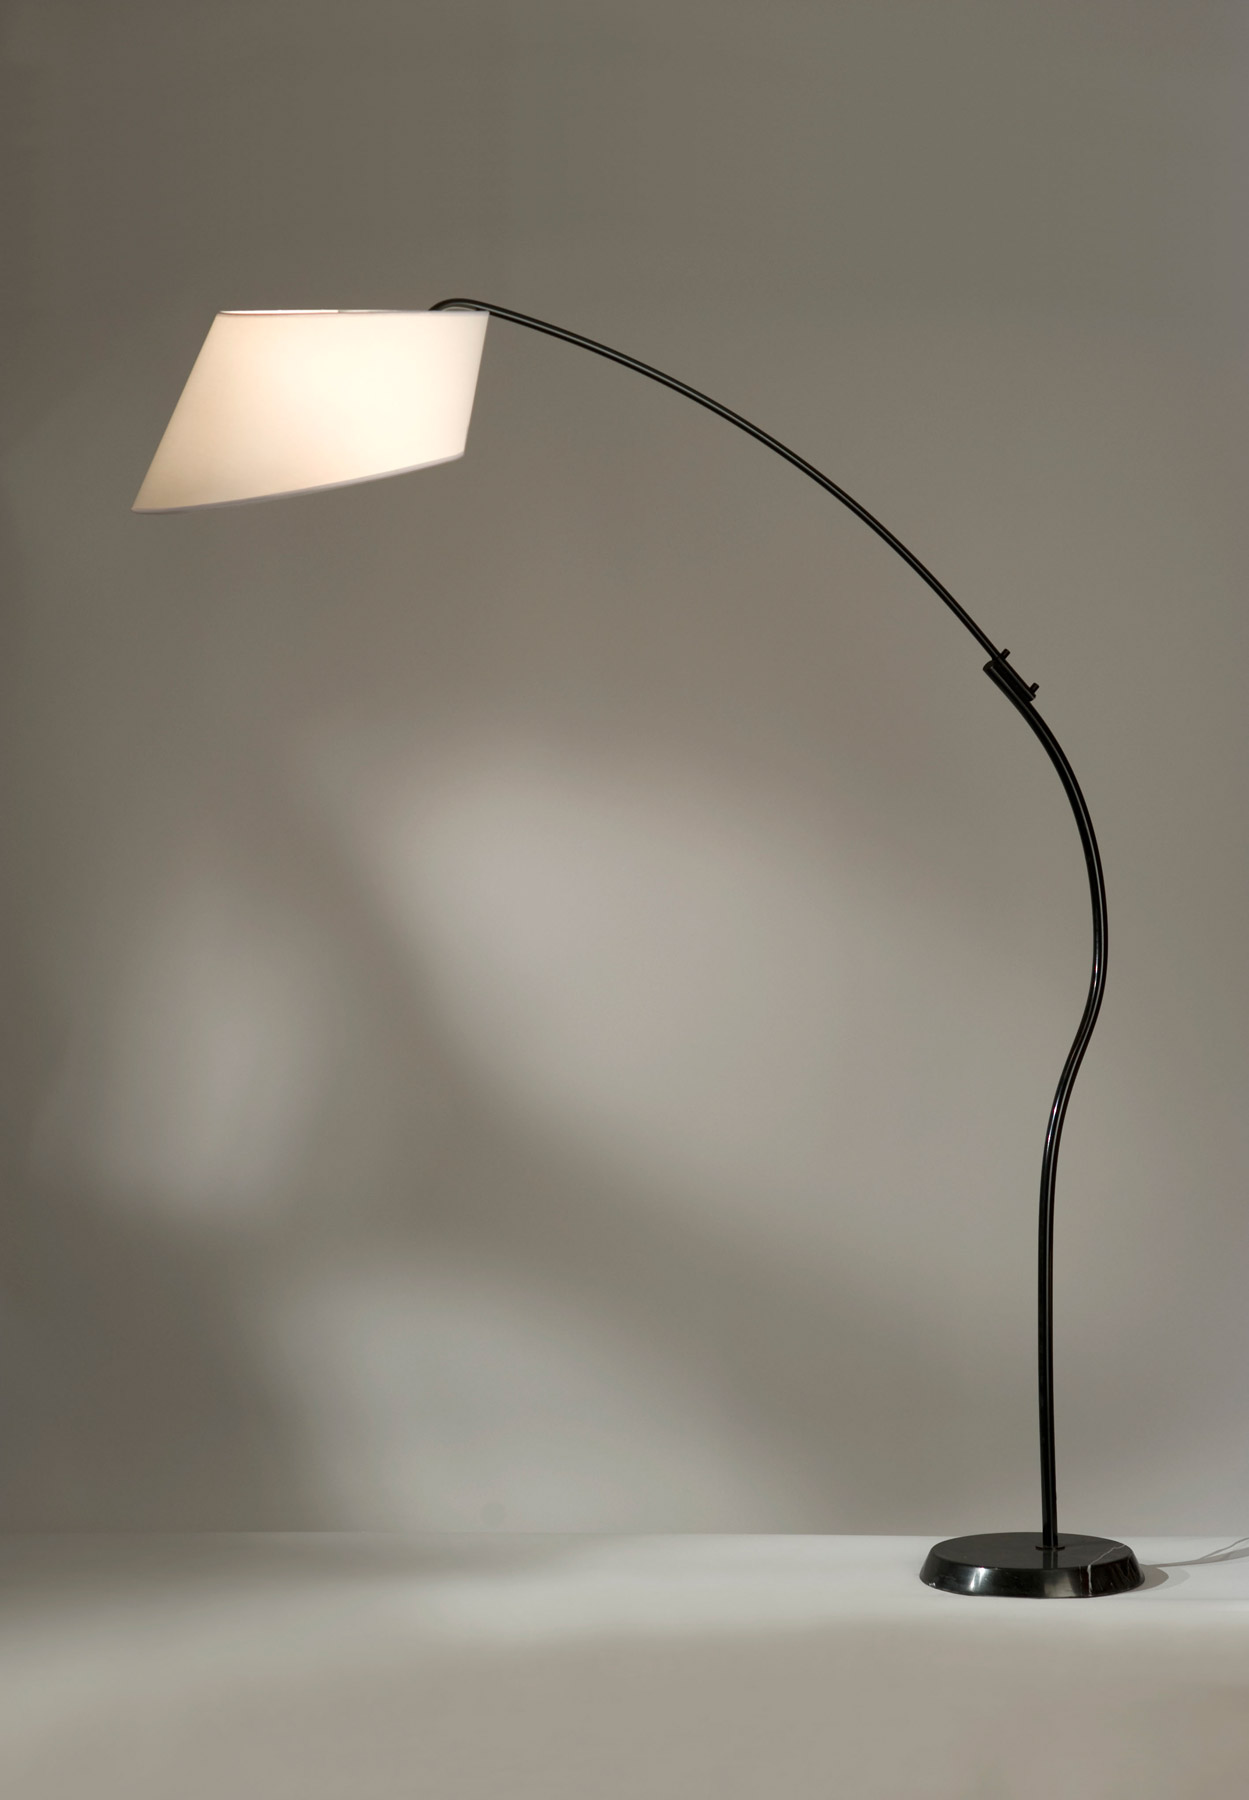 Nova Lighting 12017 Ibis Arc Floor Lamp